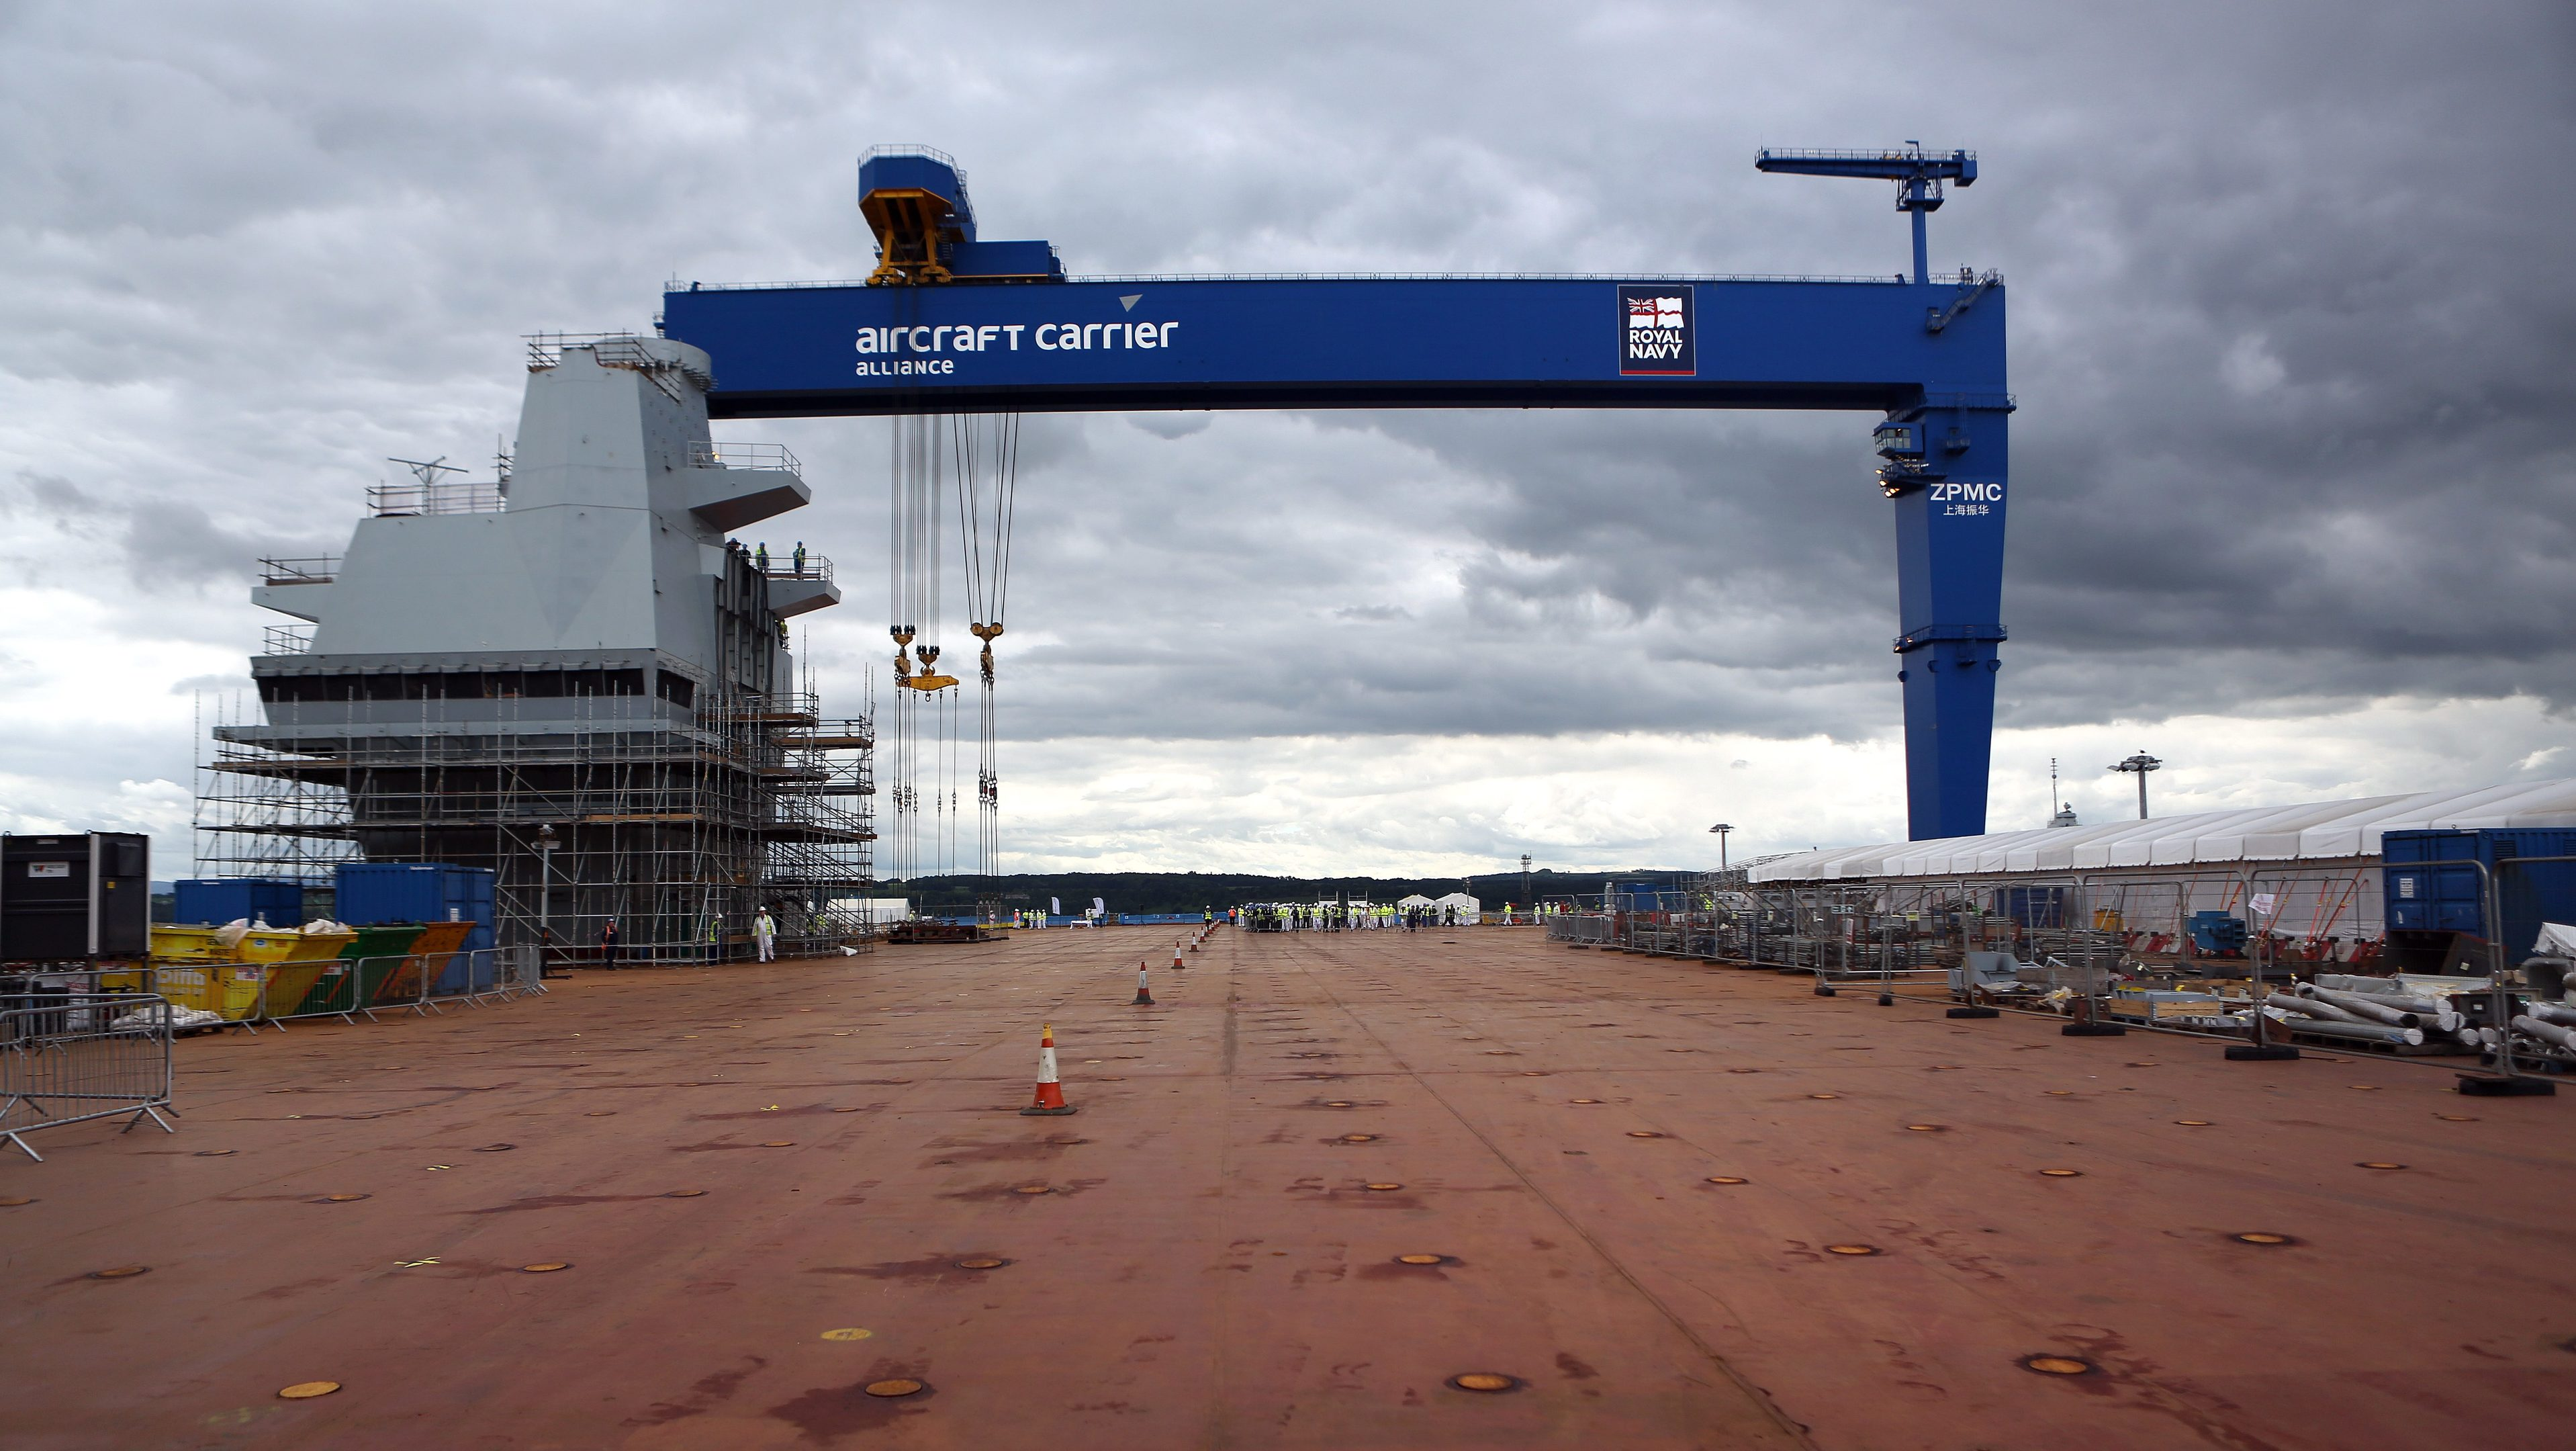 The deck of the aircraft carrier at Rosyth Dockyard.